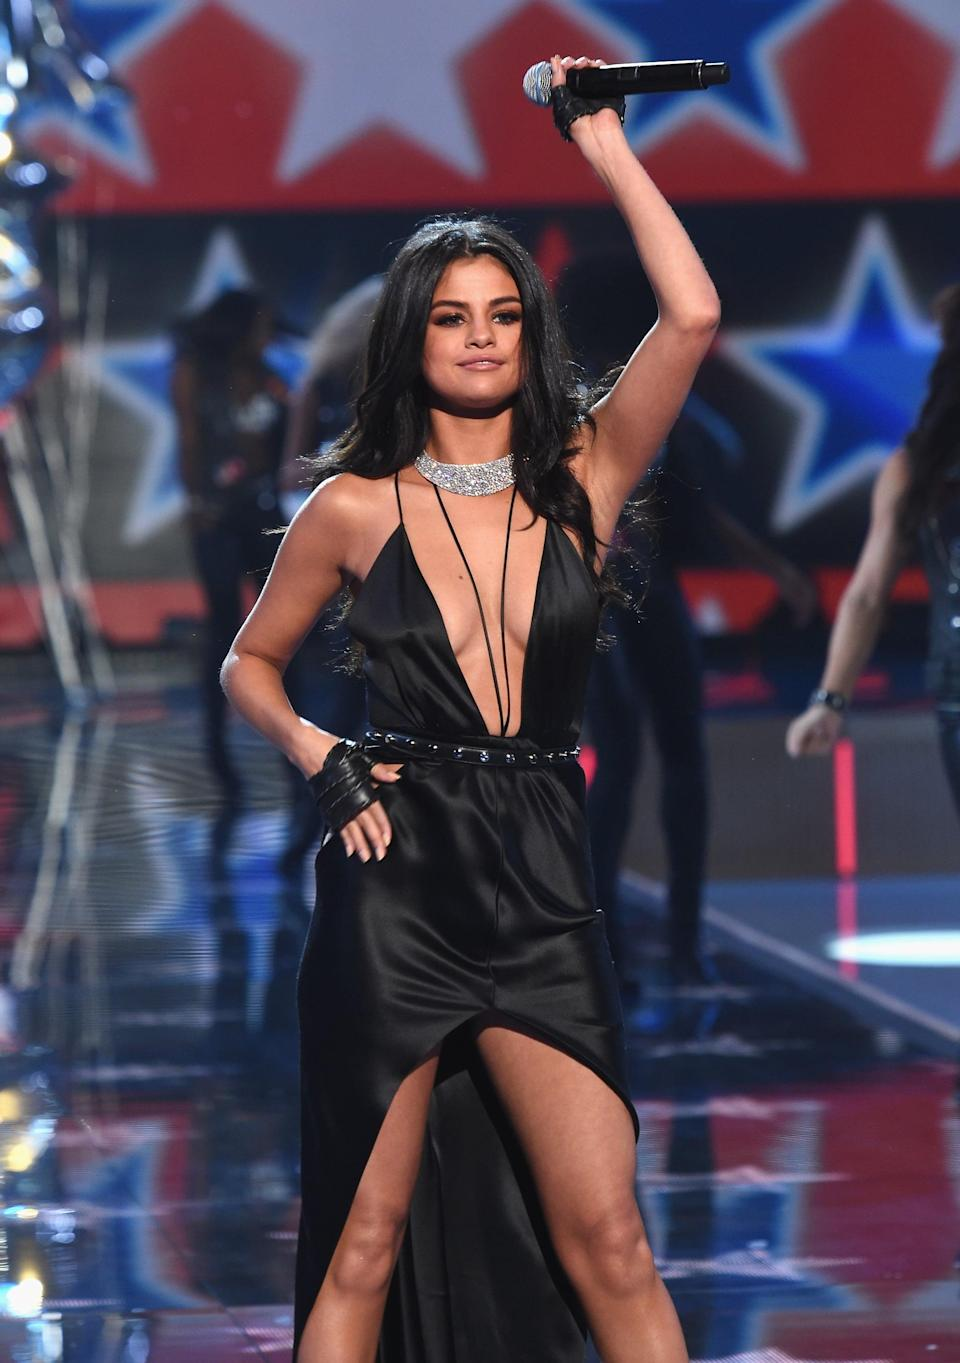 """<p>The singer outshone the models at the Victoria's Secret Fashion Show when she took the stage and delivered <a href=""""https://www.popsugar.com/latina/Selena-Gomez-Sang-Live-Victoria-Secret-Fashion-Show-39344686"""" class=""""link rapid-noclick-resp"""" rel=""""nofollow noopener"""" target=""""_blank"""" data-ylk=""""slk:an amazing performance of her hit songs"""">an amazing performance of her hit songs</a>, """"Can't Keep my Hands to Myself"""" and """"My Girls.""""</p>"""